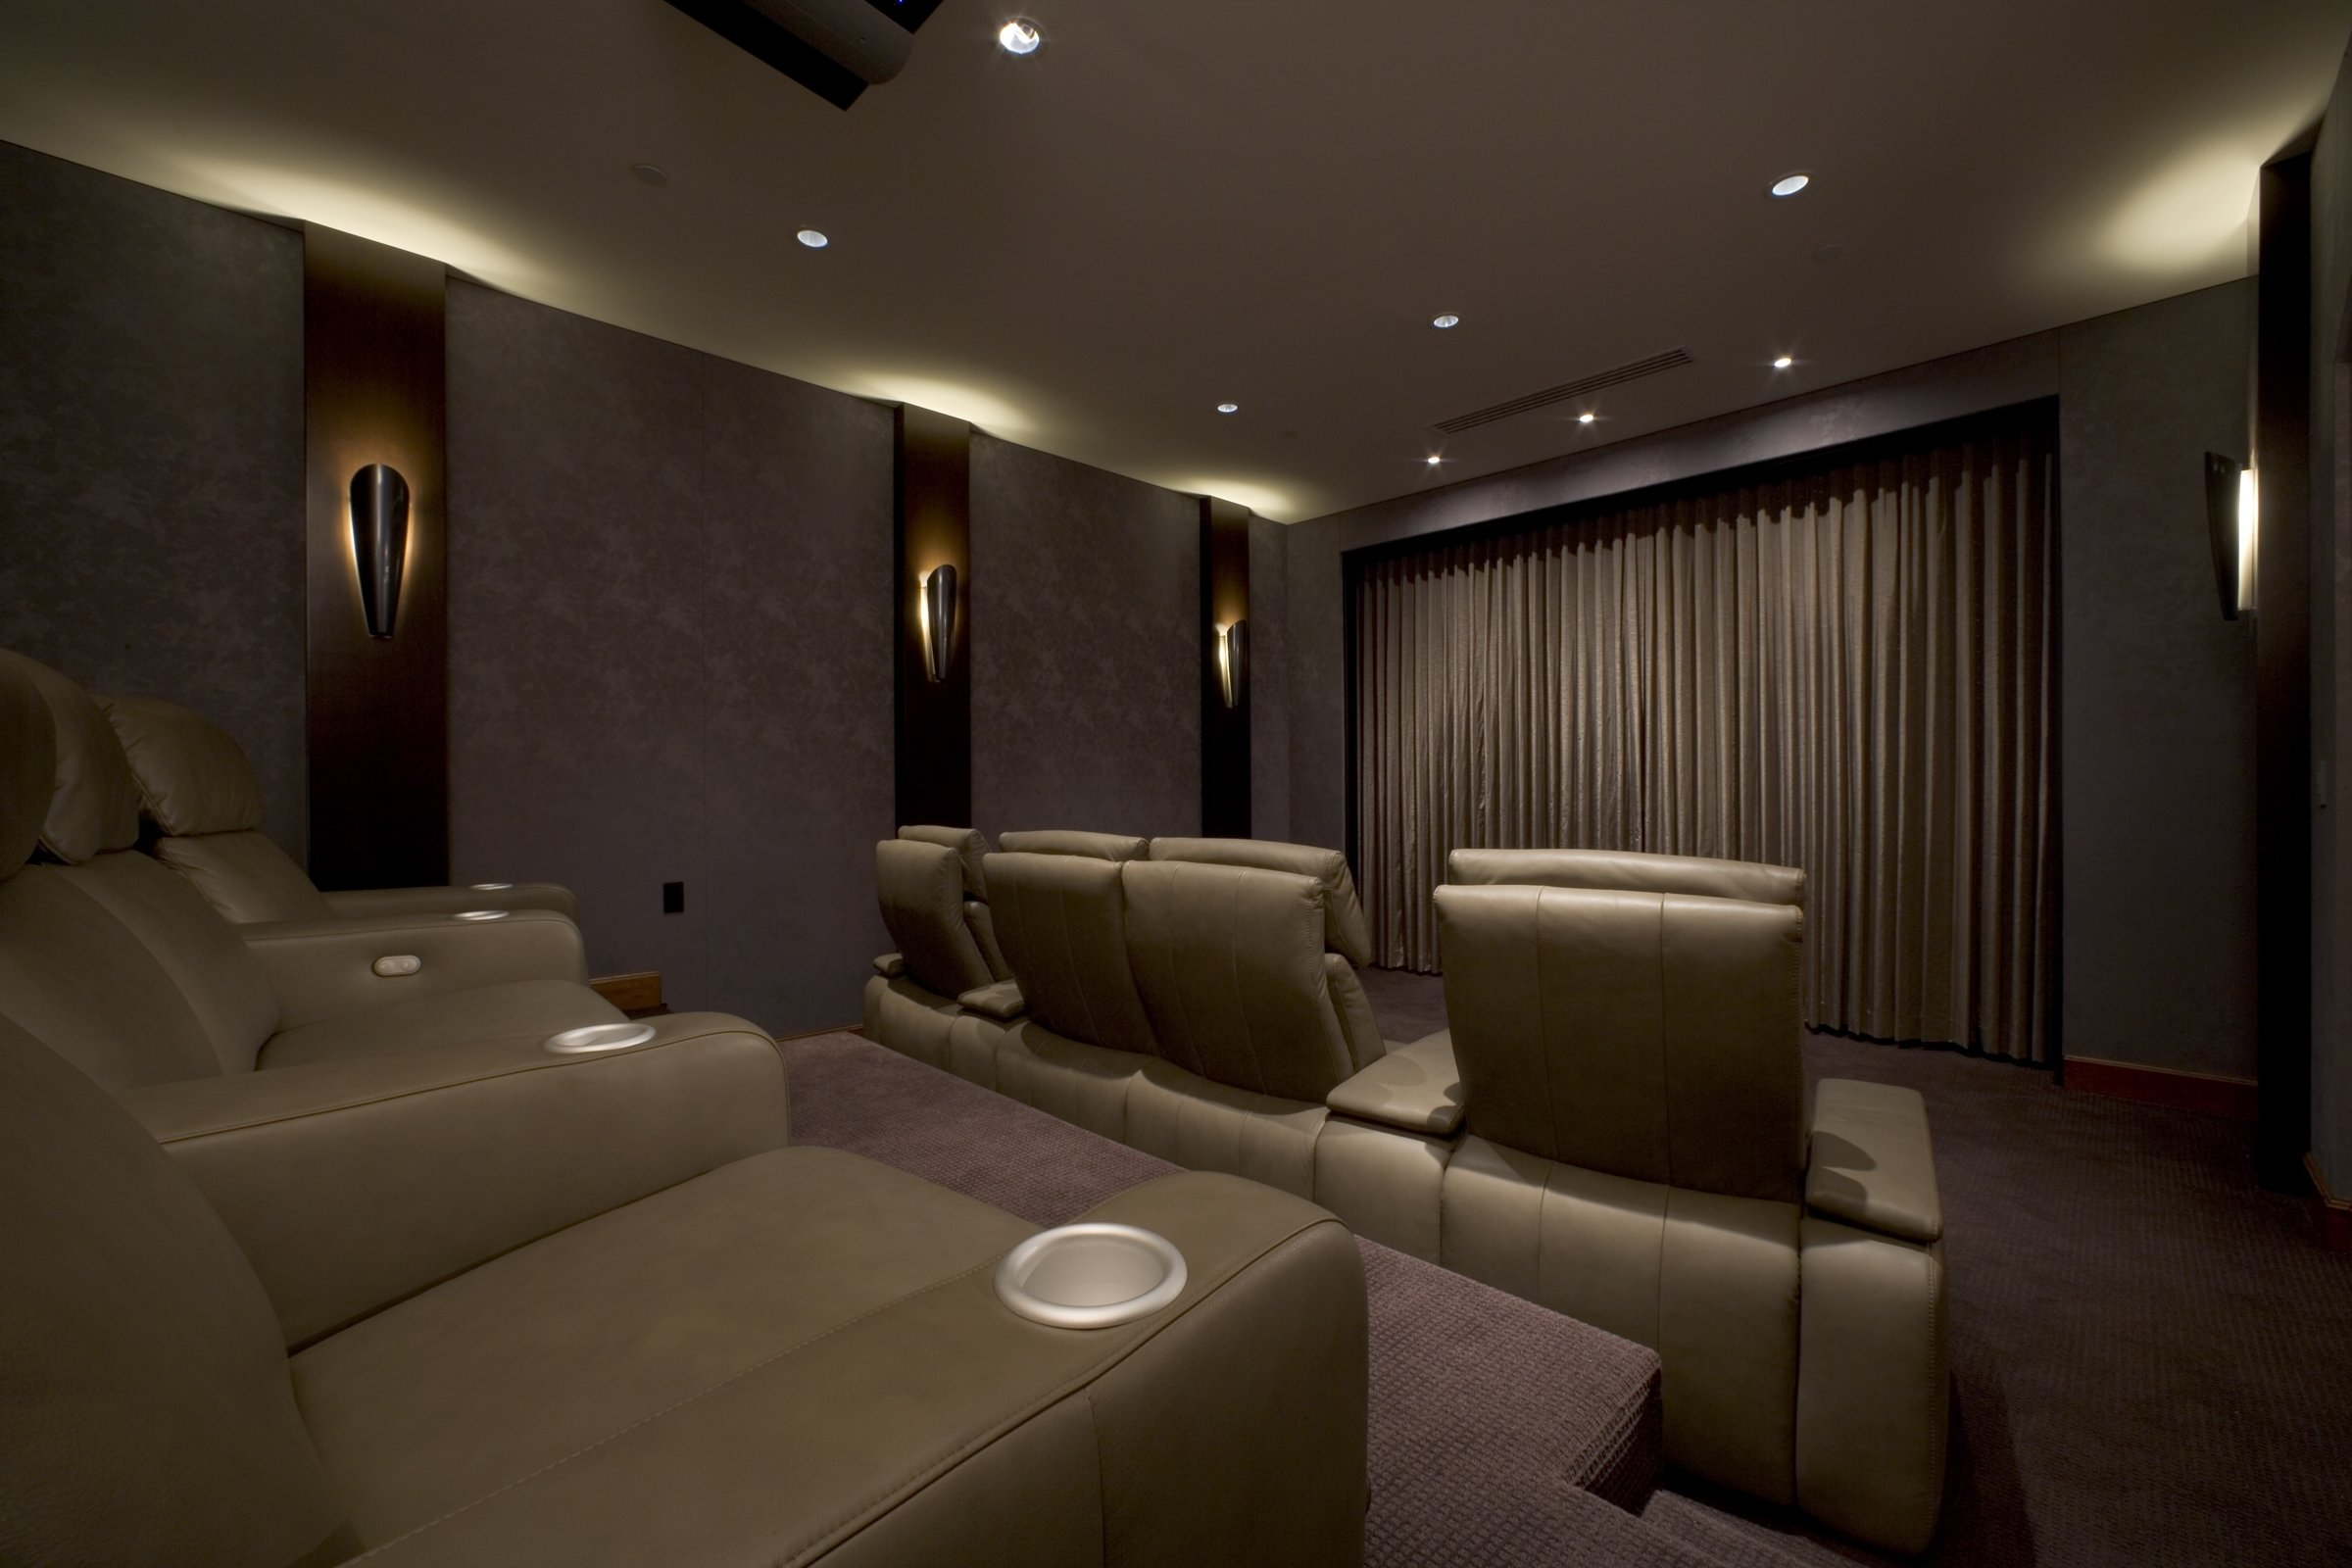 10 Most Popular Home Theater Ideas For Small Rooms fresh small home theater ideas room design lovely and www 2020